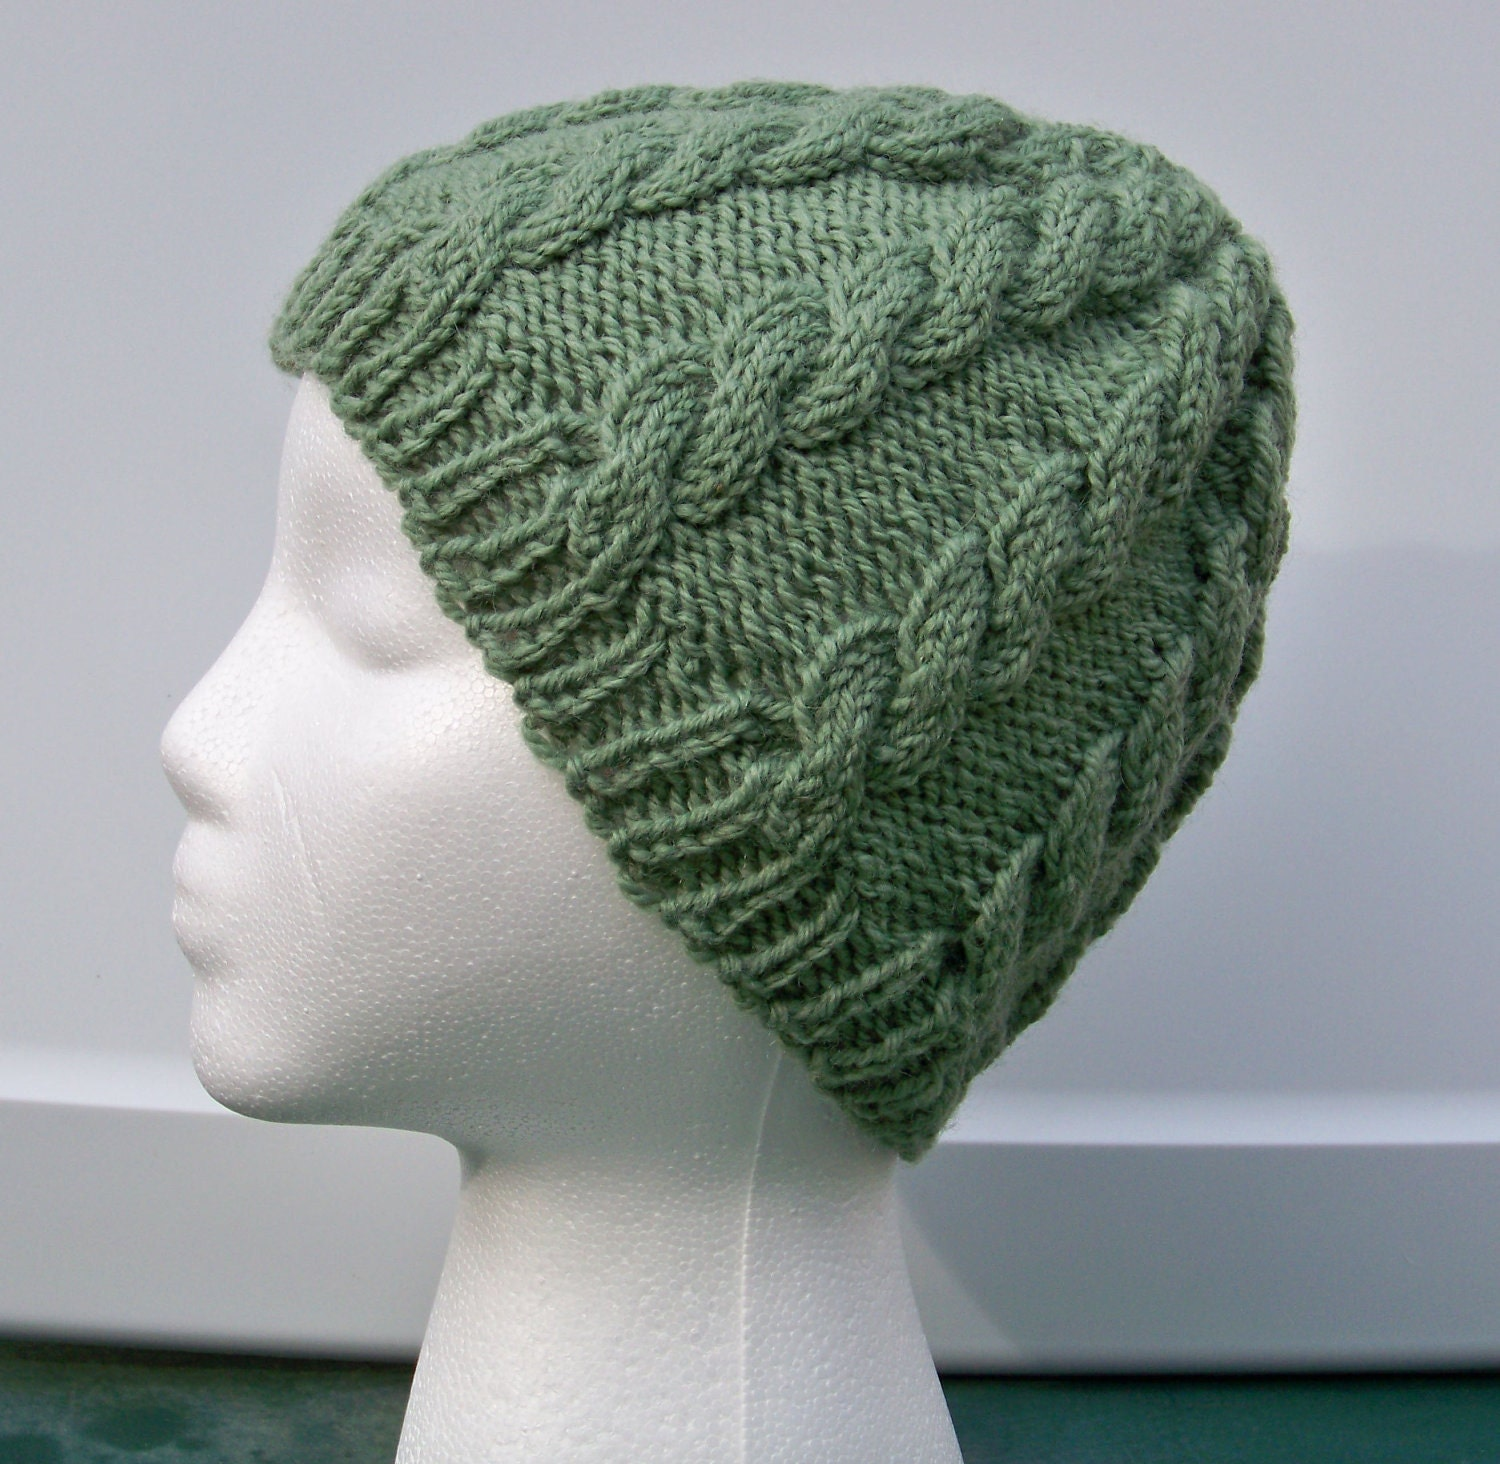 Fisherman's Cable Knit Hat